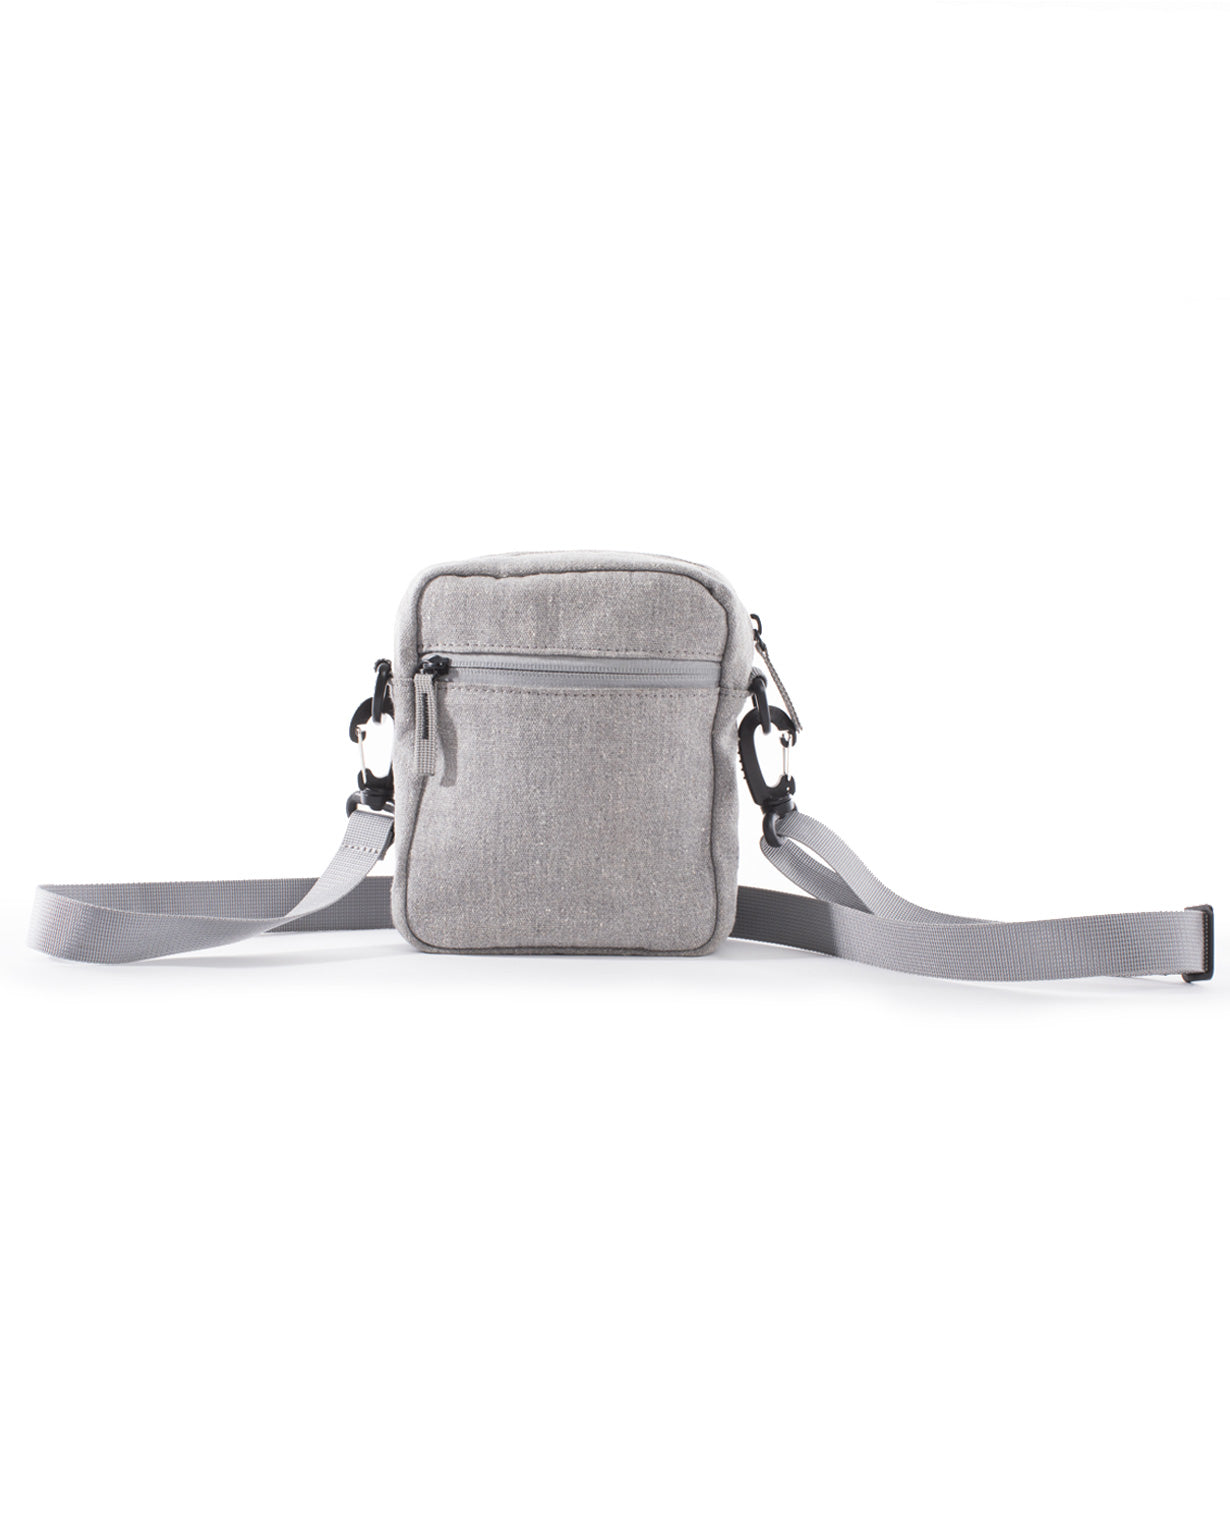 Essential Bag Light Grey - Bolso Orgánico